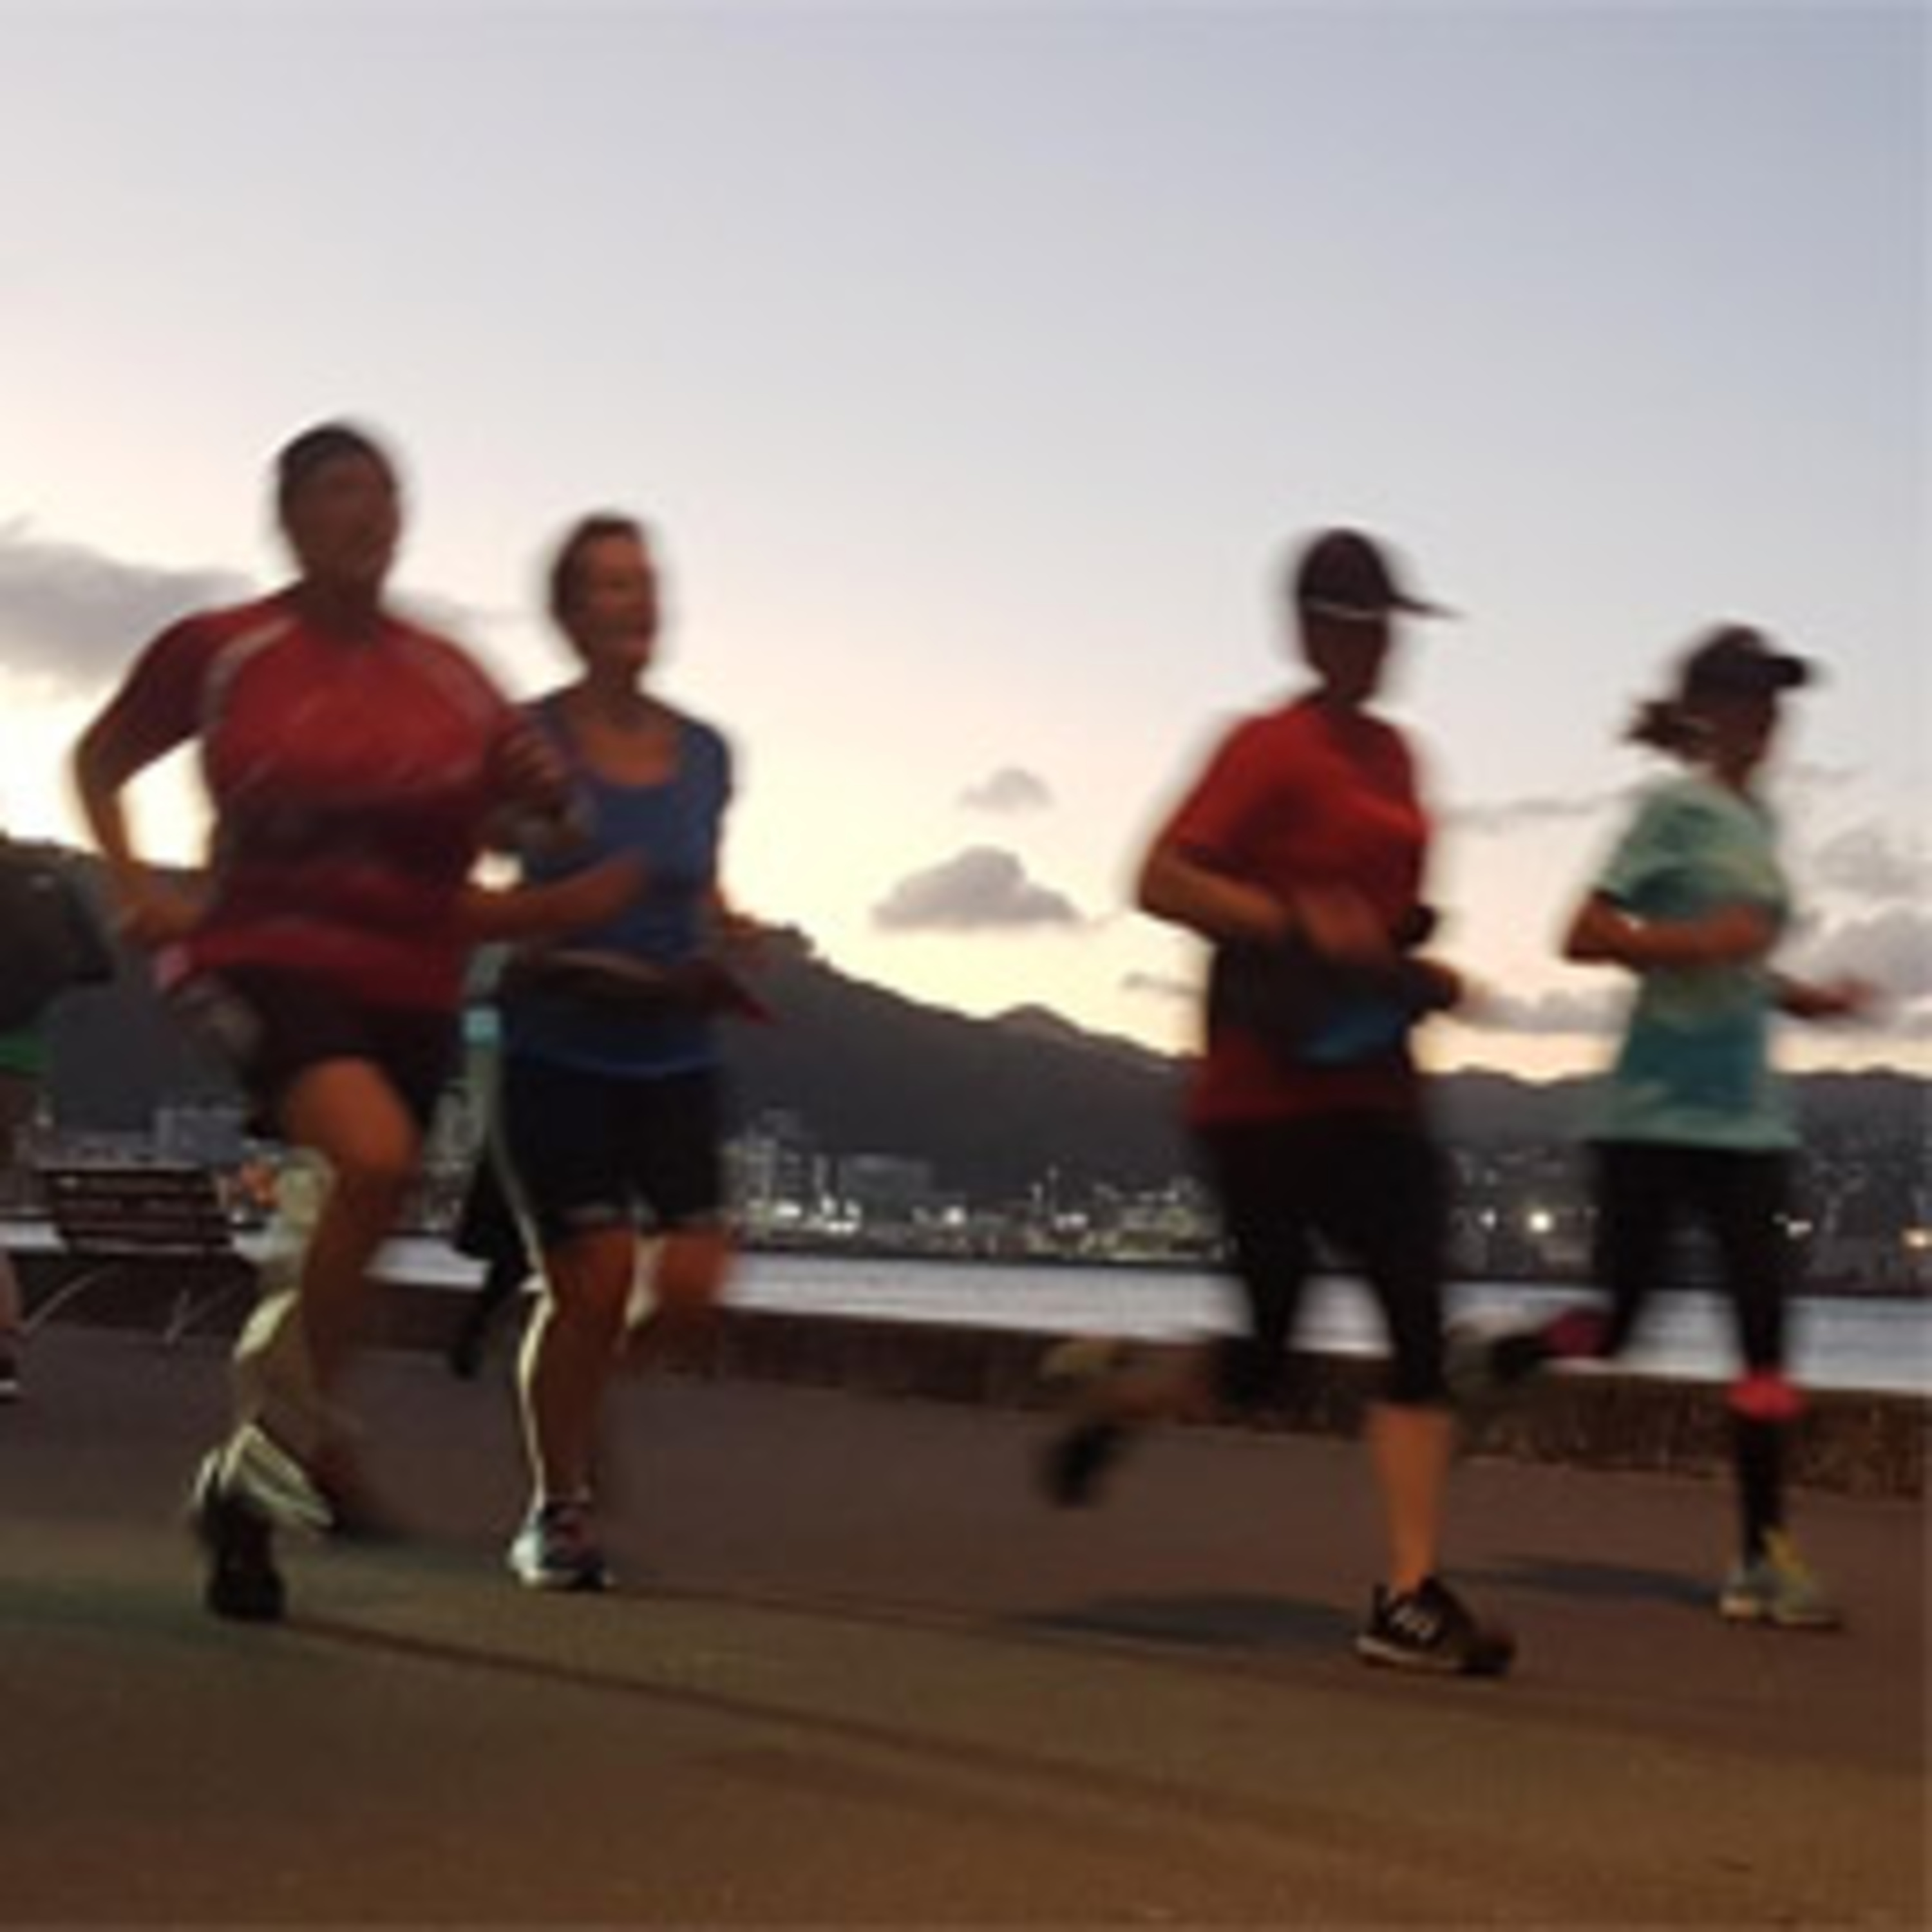 Episode 26 - Get more from your running